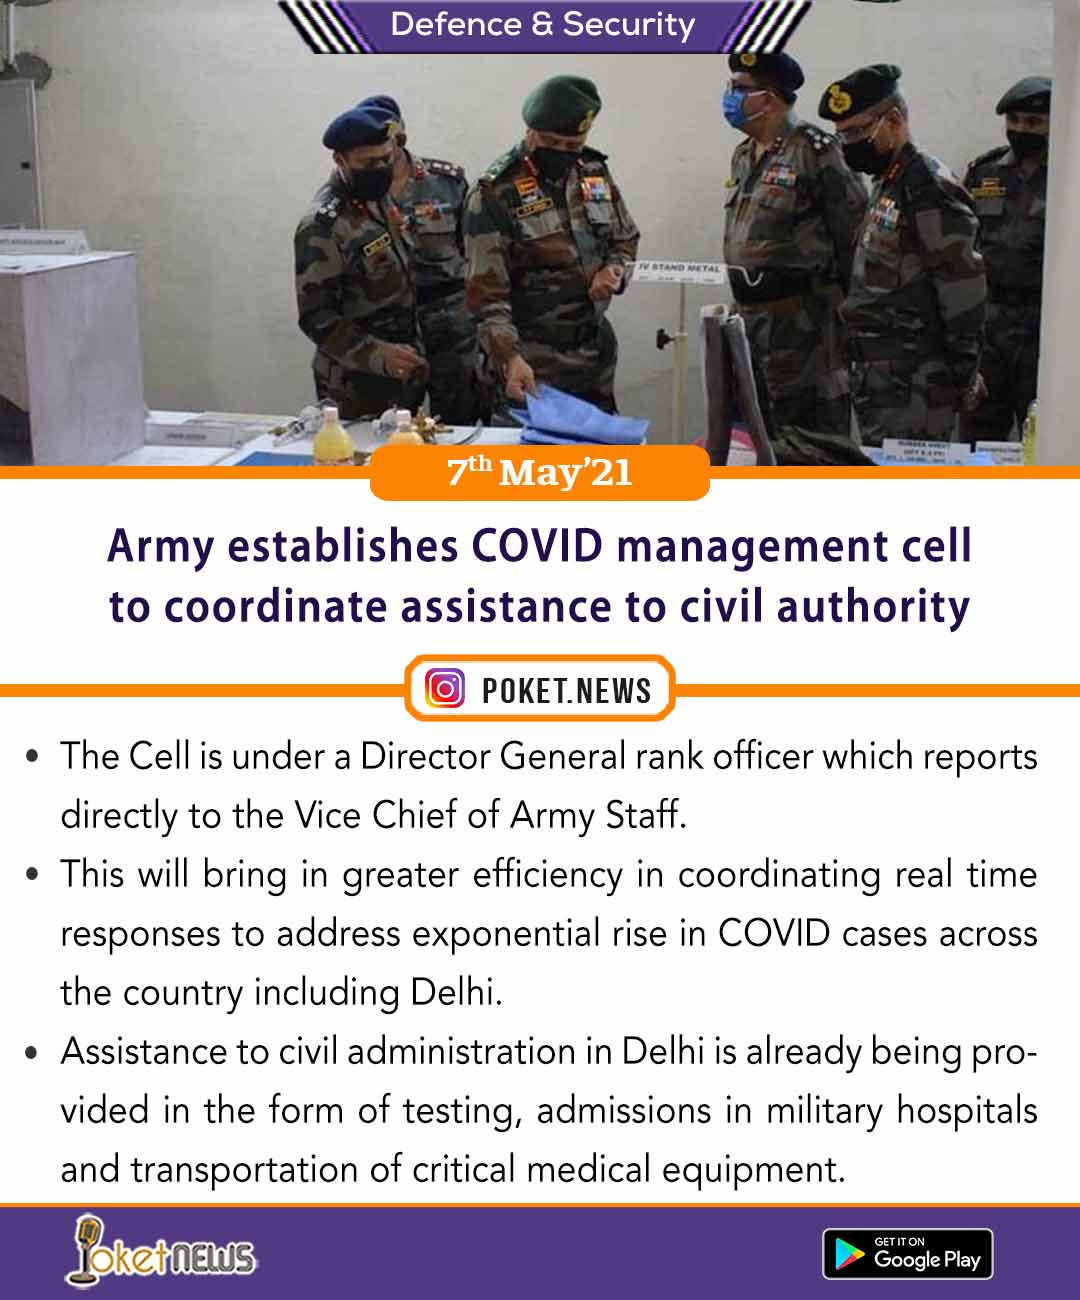 Army establishes COVID management cell to coordinate assistance to civil authority